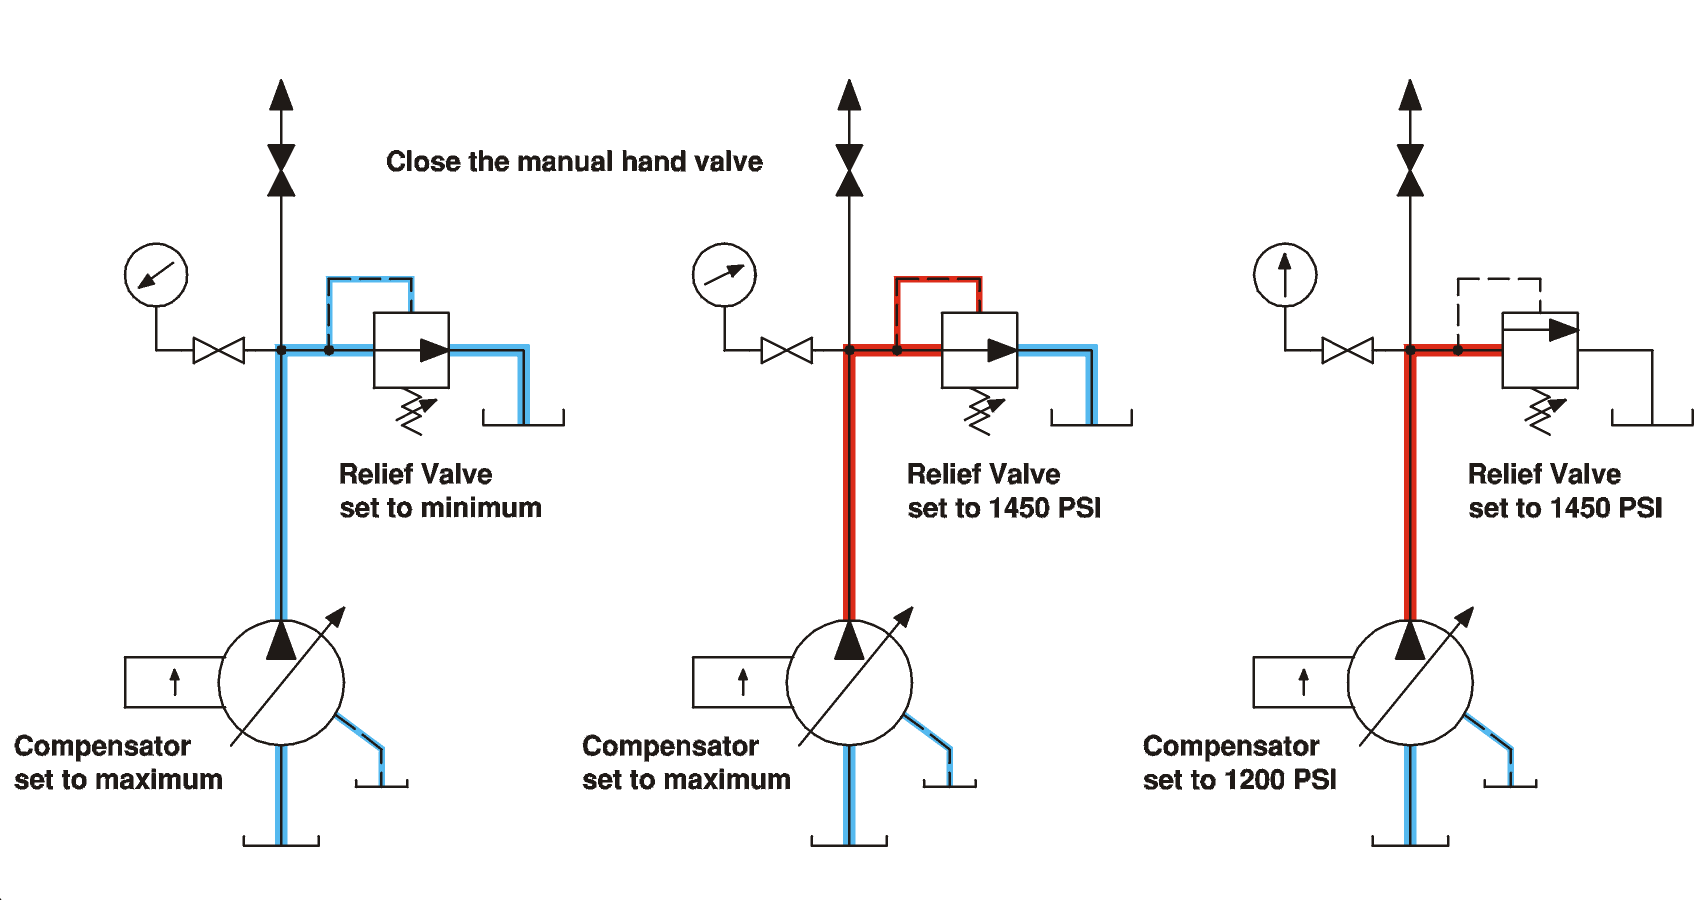 Setting the Pump Compensator and System Relief Valve | GPM HYDRAULIC